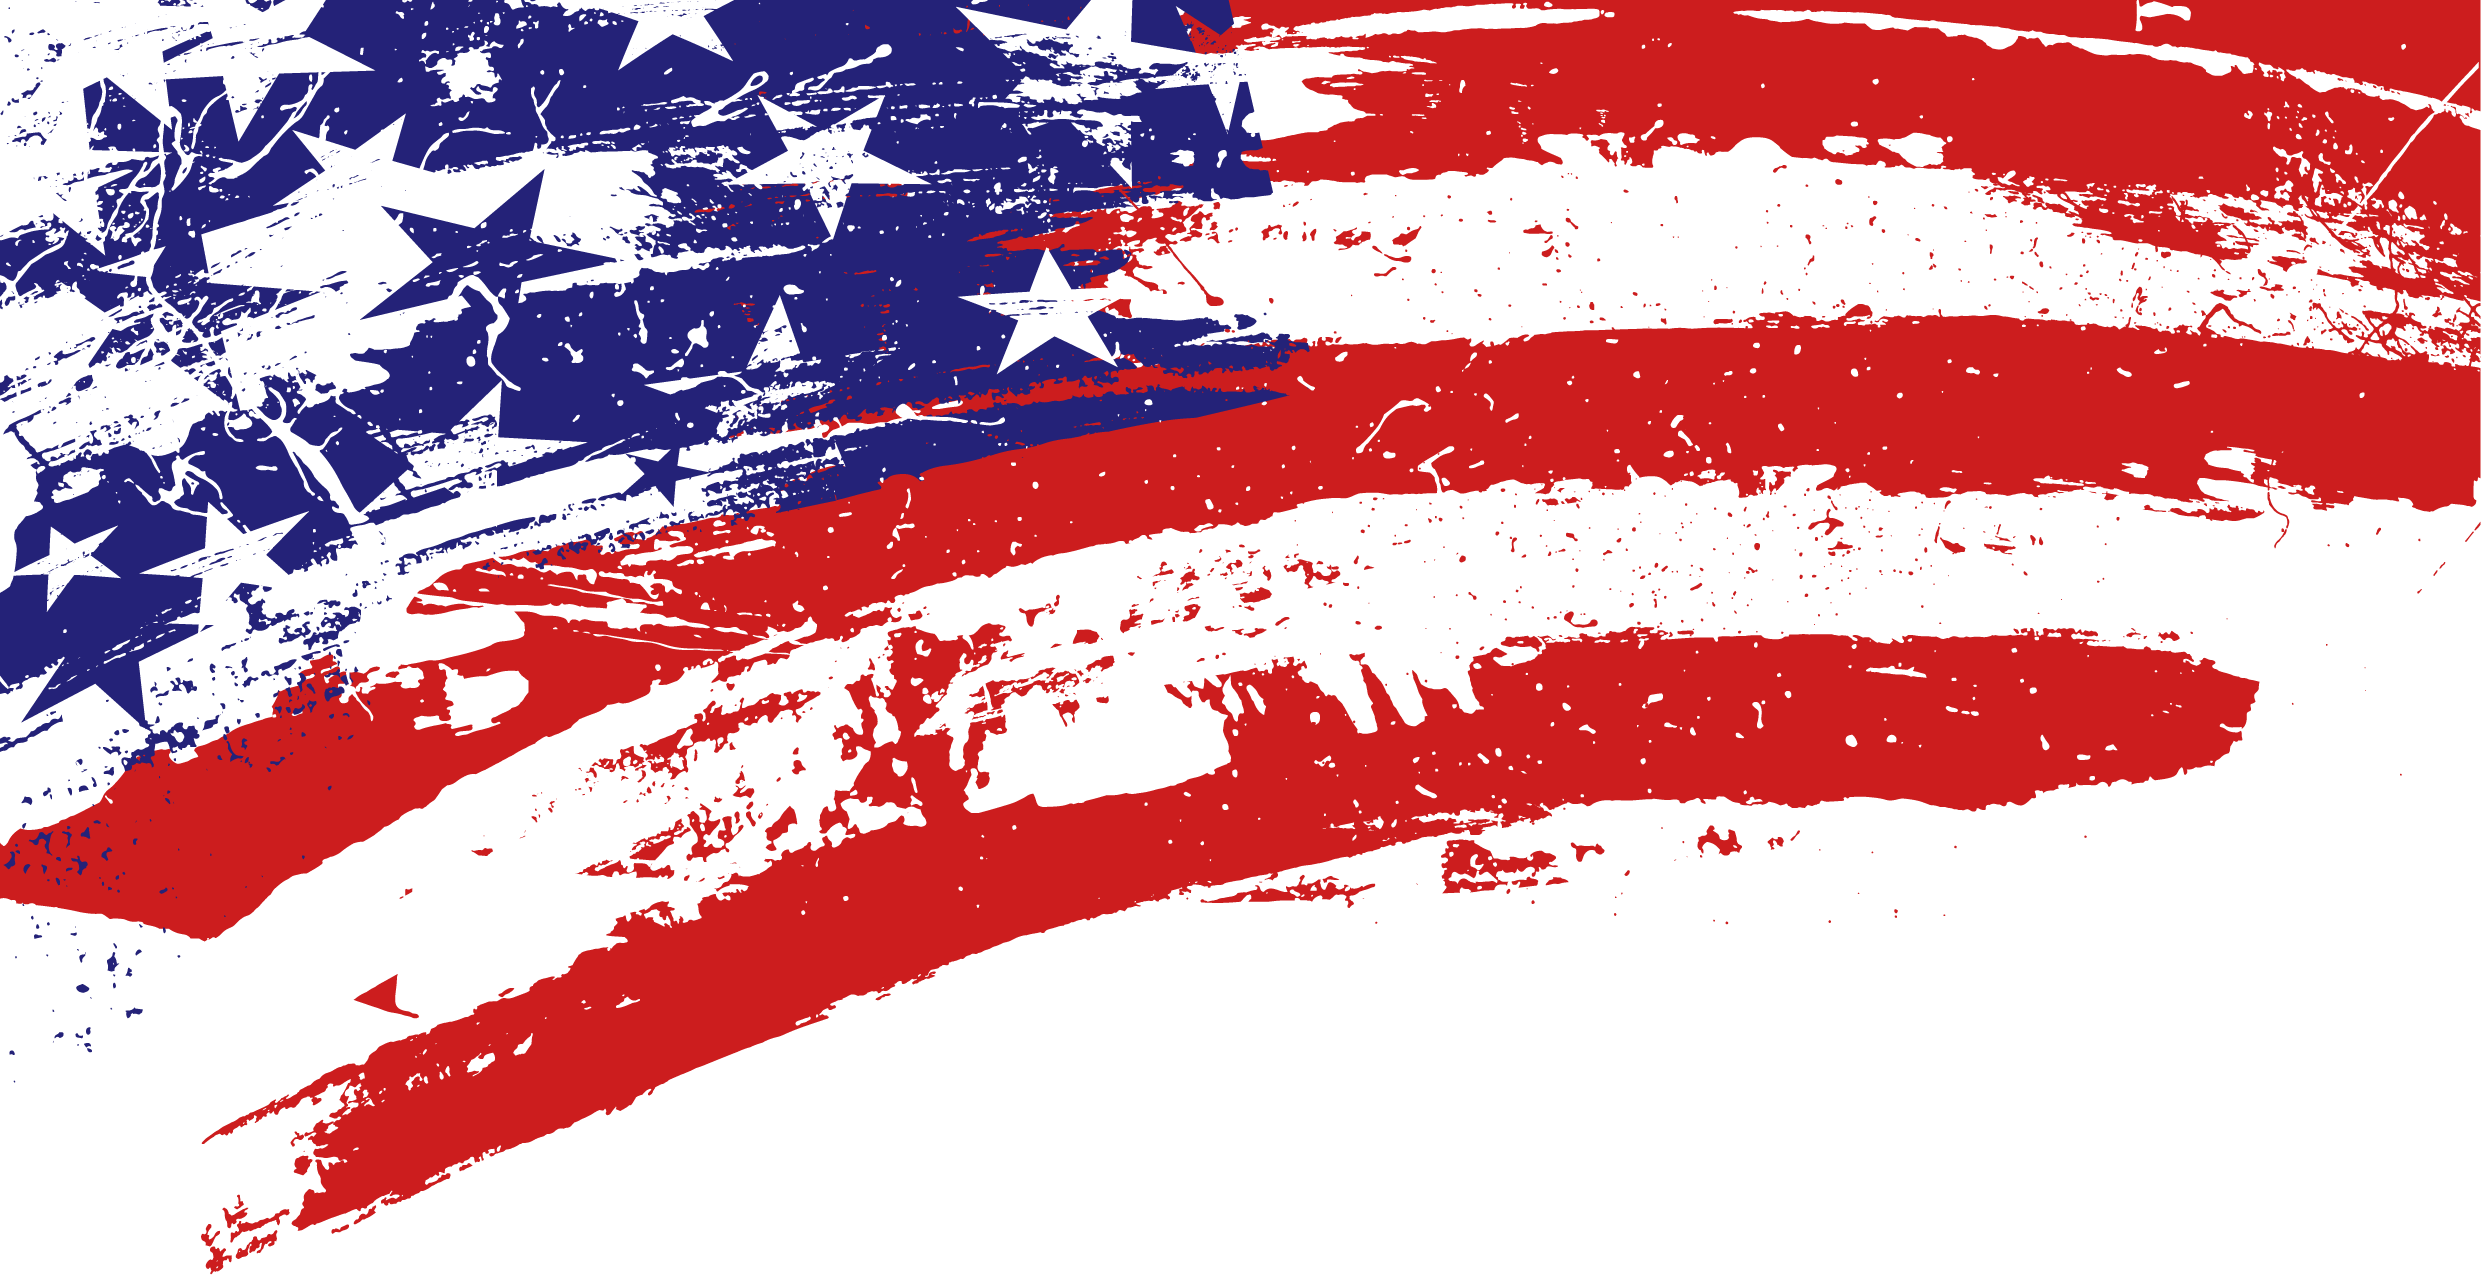 Abstract american star and flag clipart clip free library U.S. intel warning of possible al Qaeda attacks in U.S. Monday ... clip free library